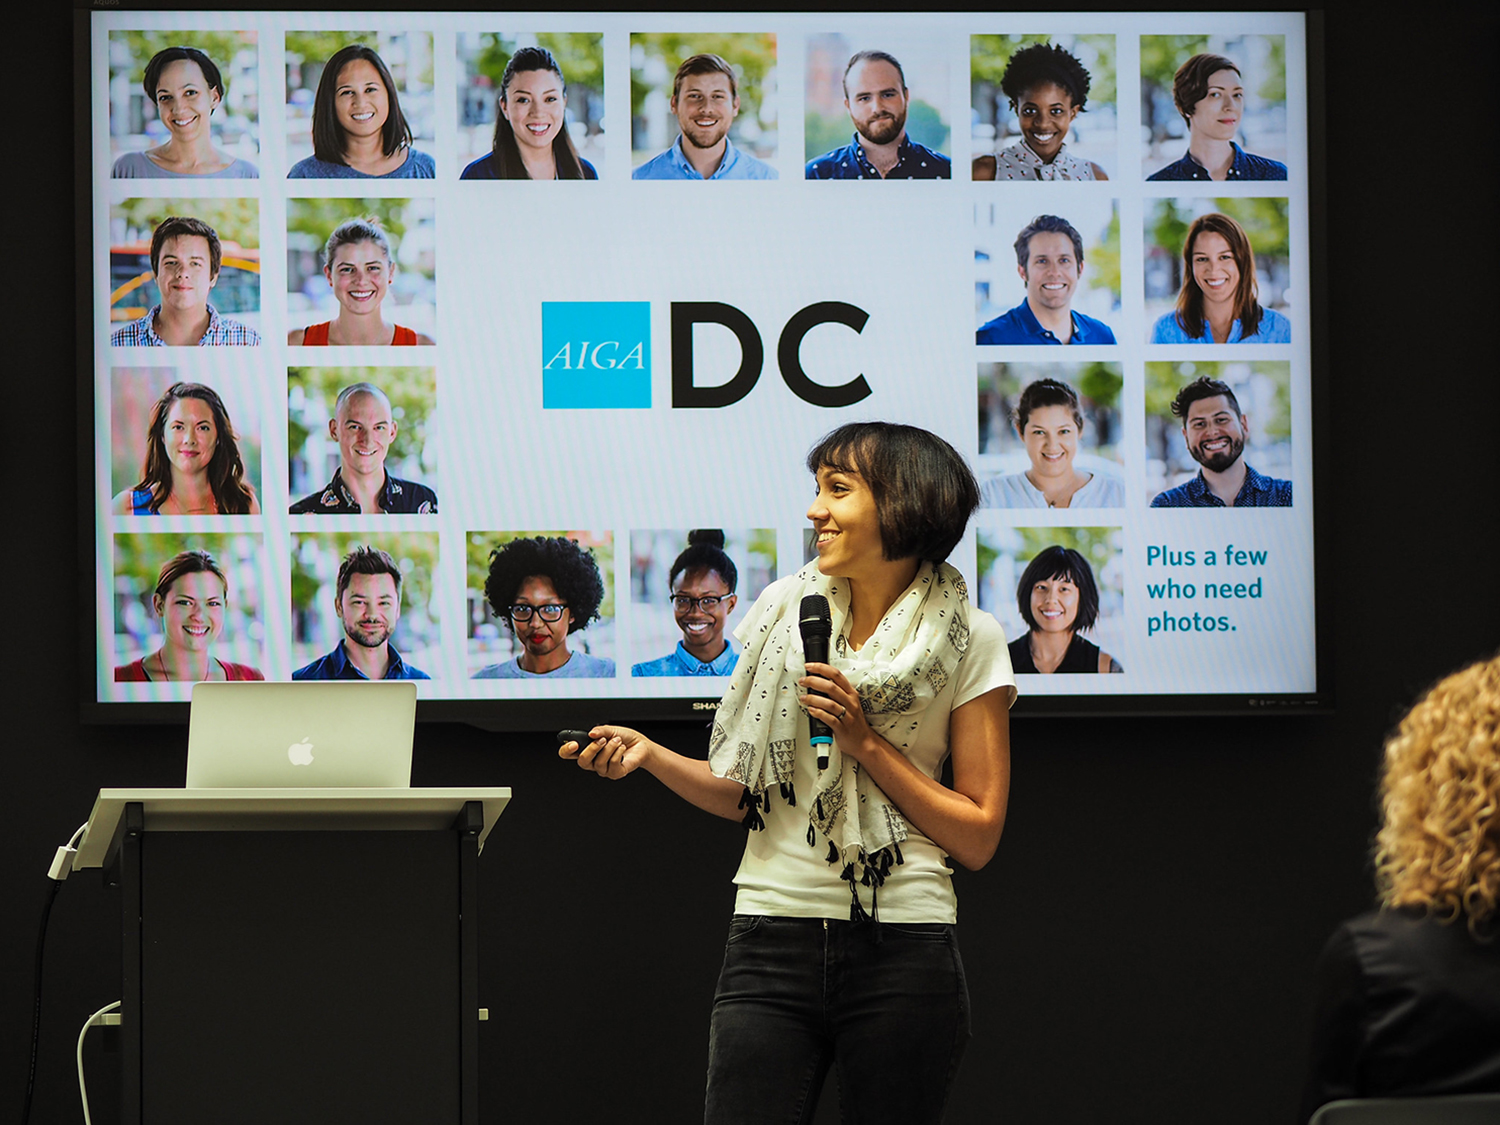 Ashleigh Axios speaks to AIGA Chicago in 2016 and highlights the AIGA DC board of directors. (Photo by  Chris Mendoza )